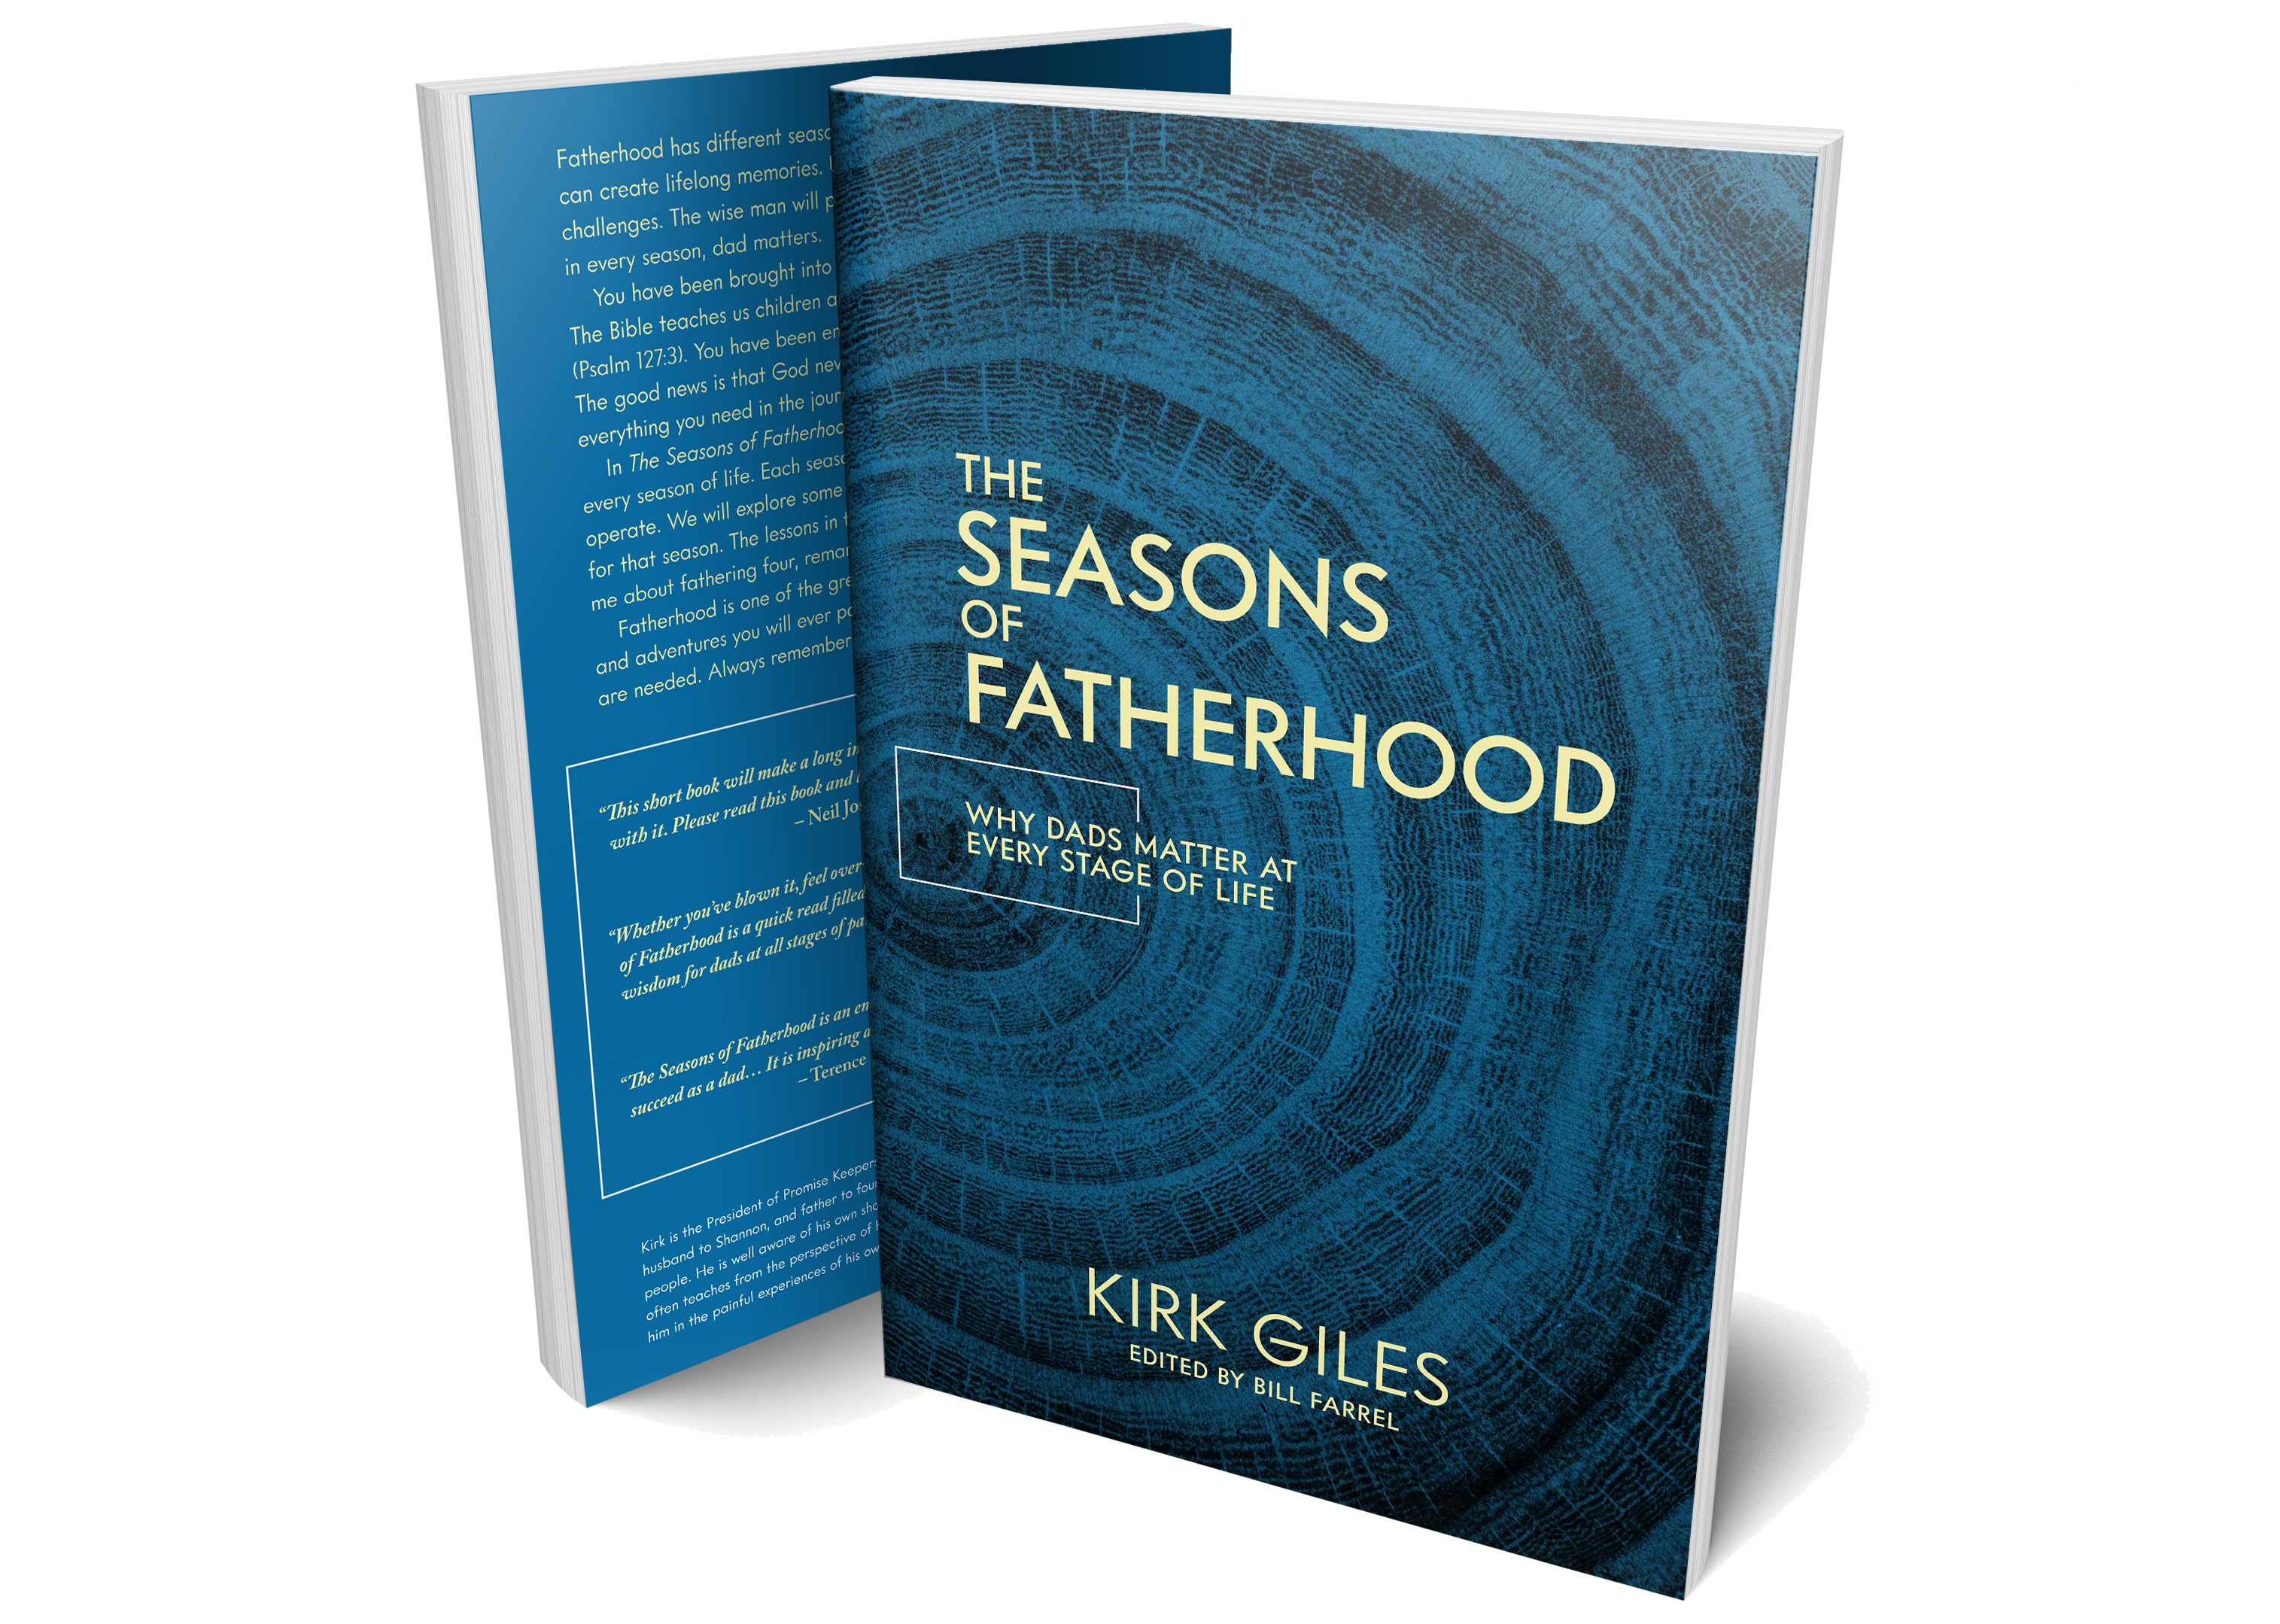 The Seasons of Fatherhood